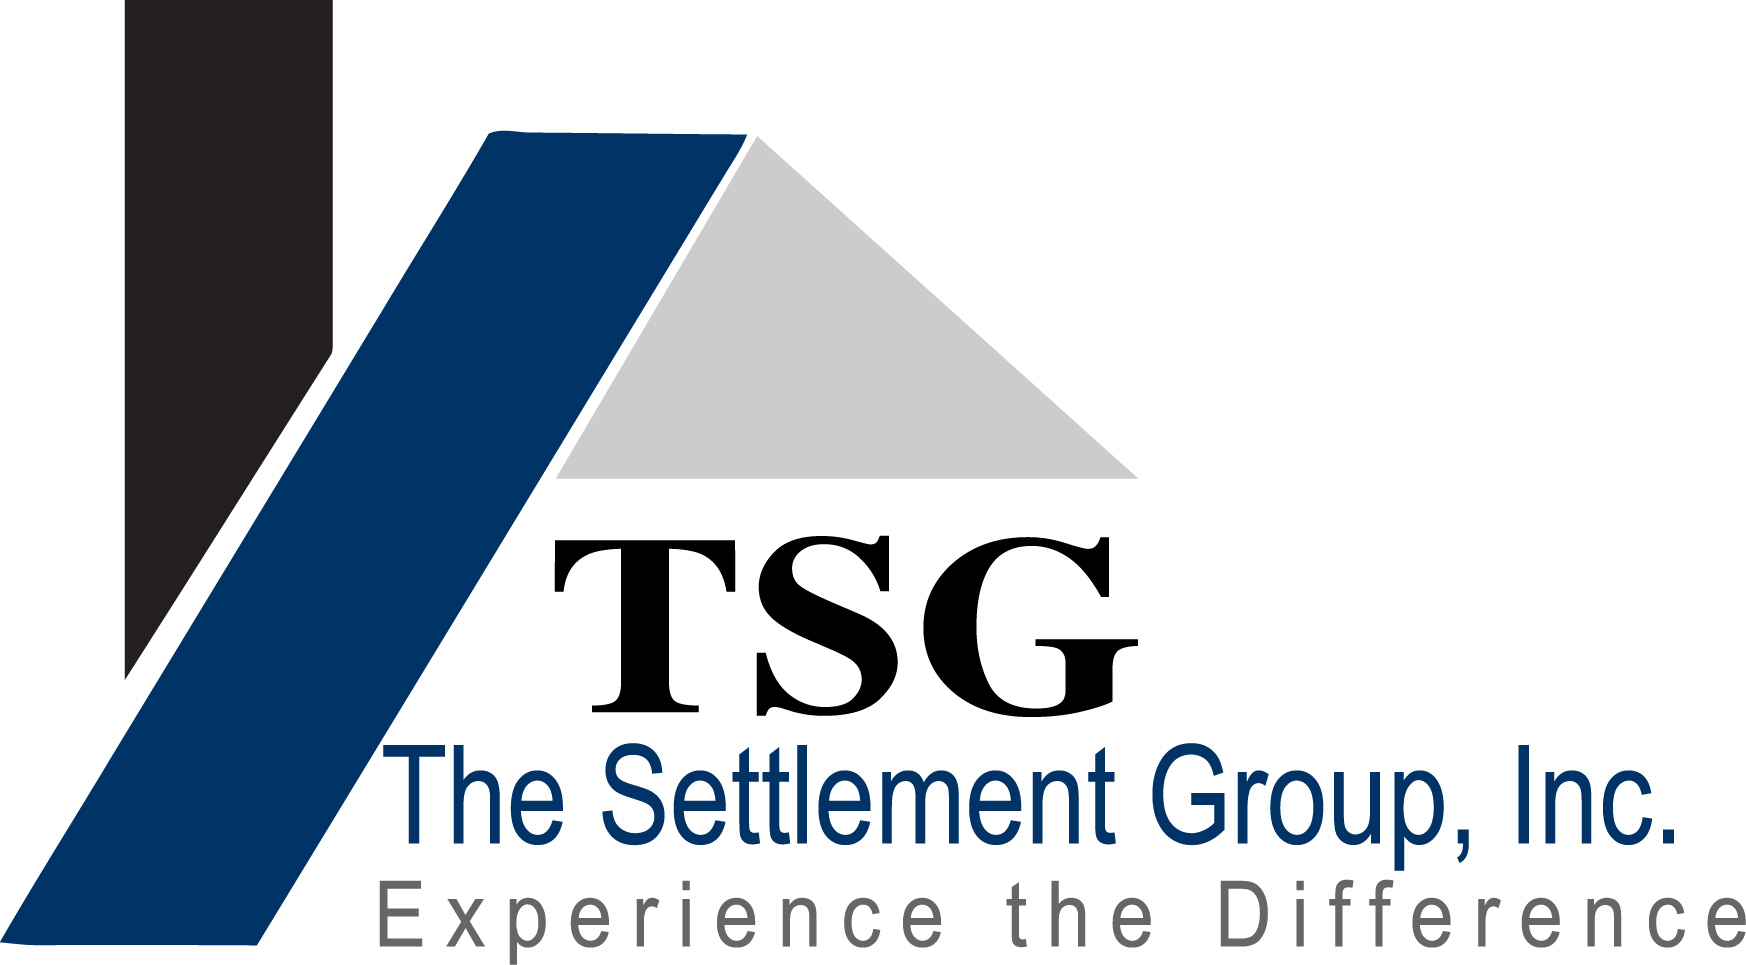 The Settlement Group logo